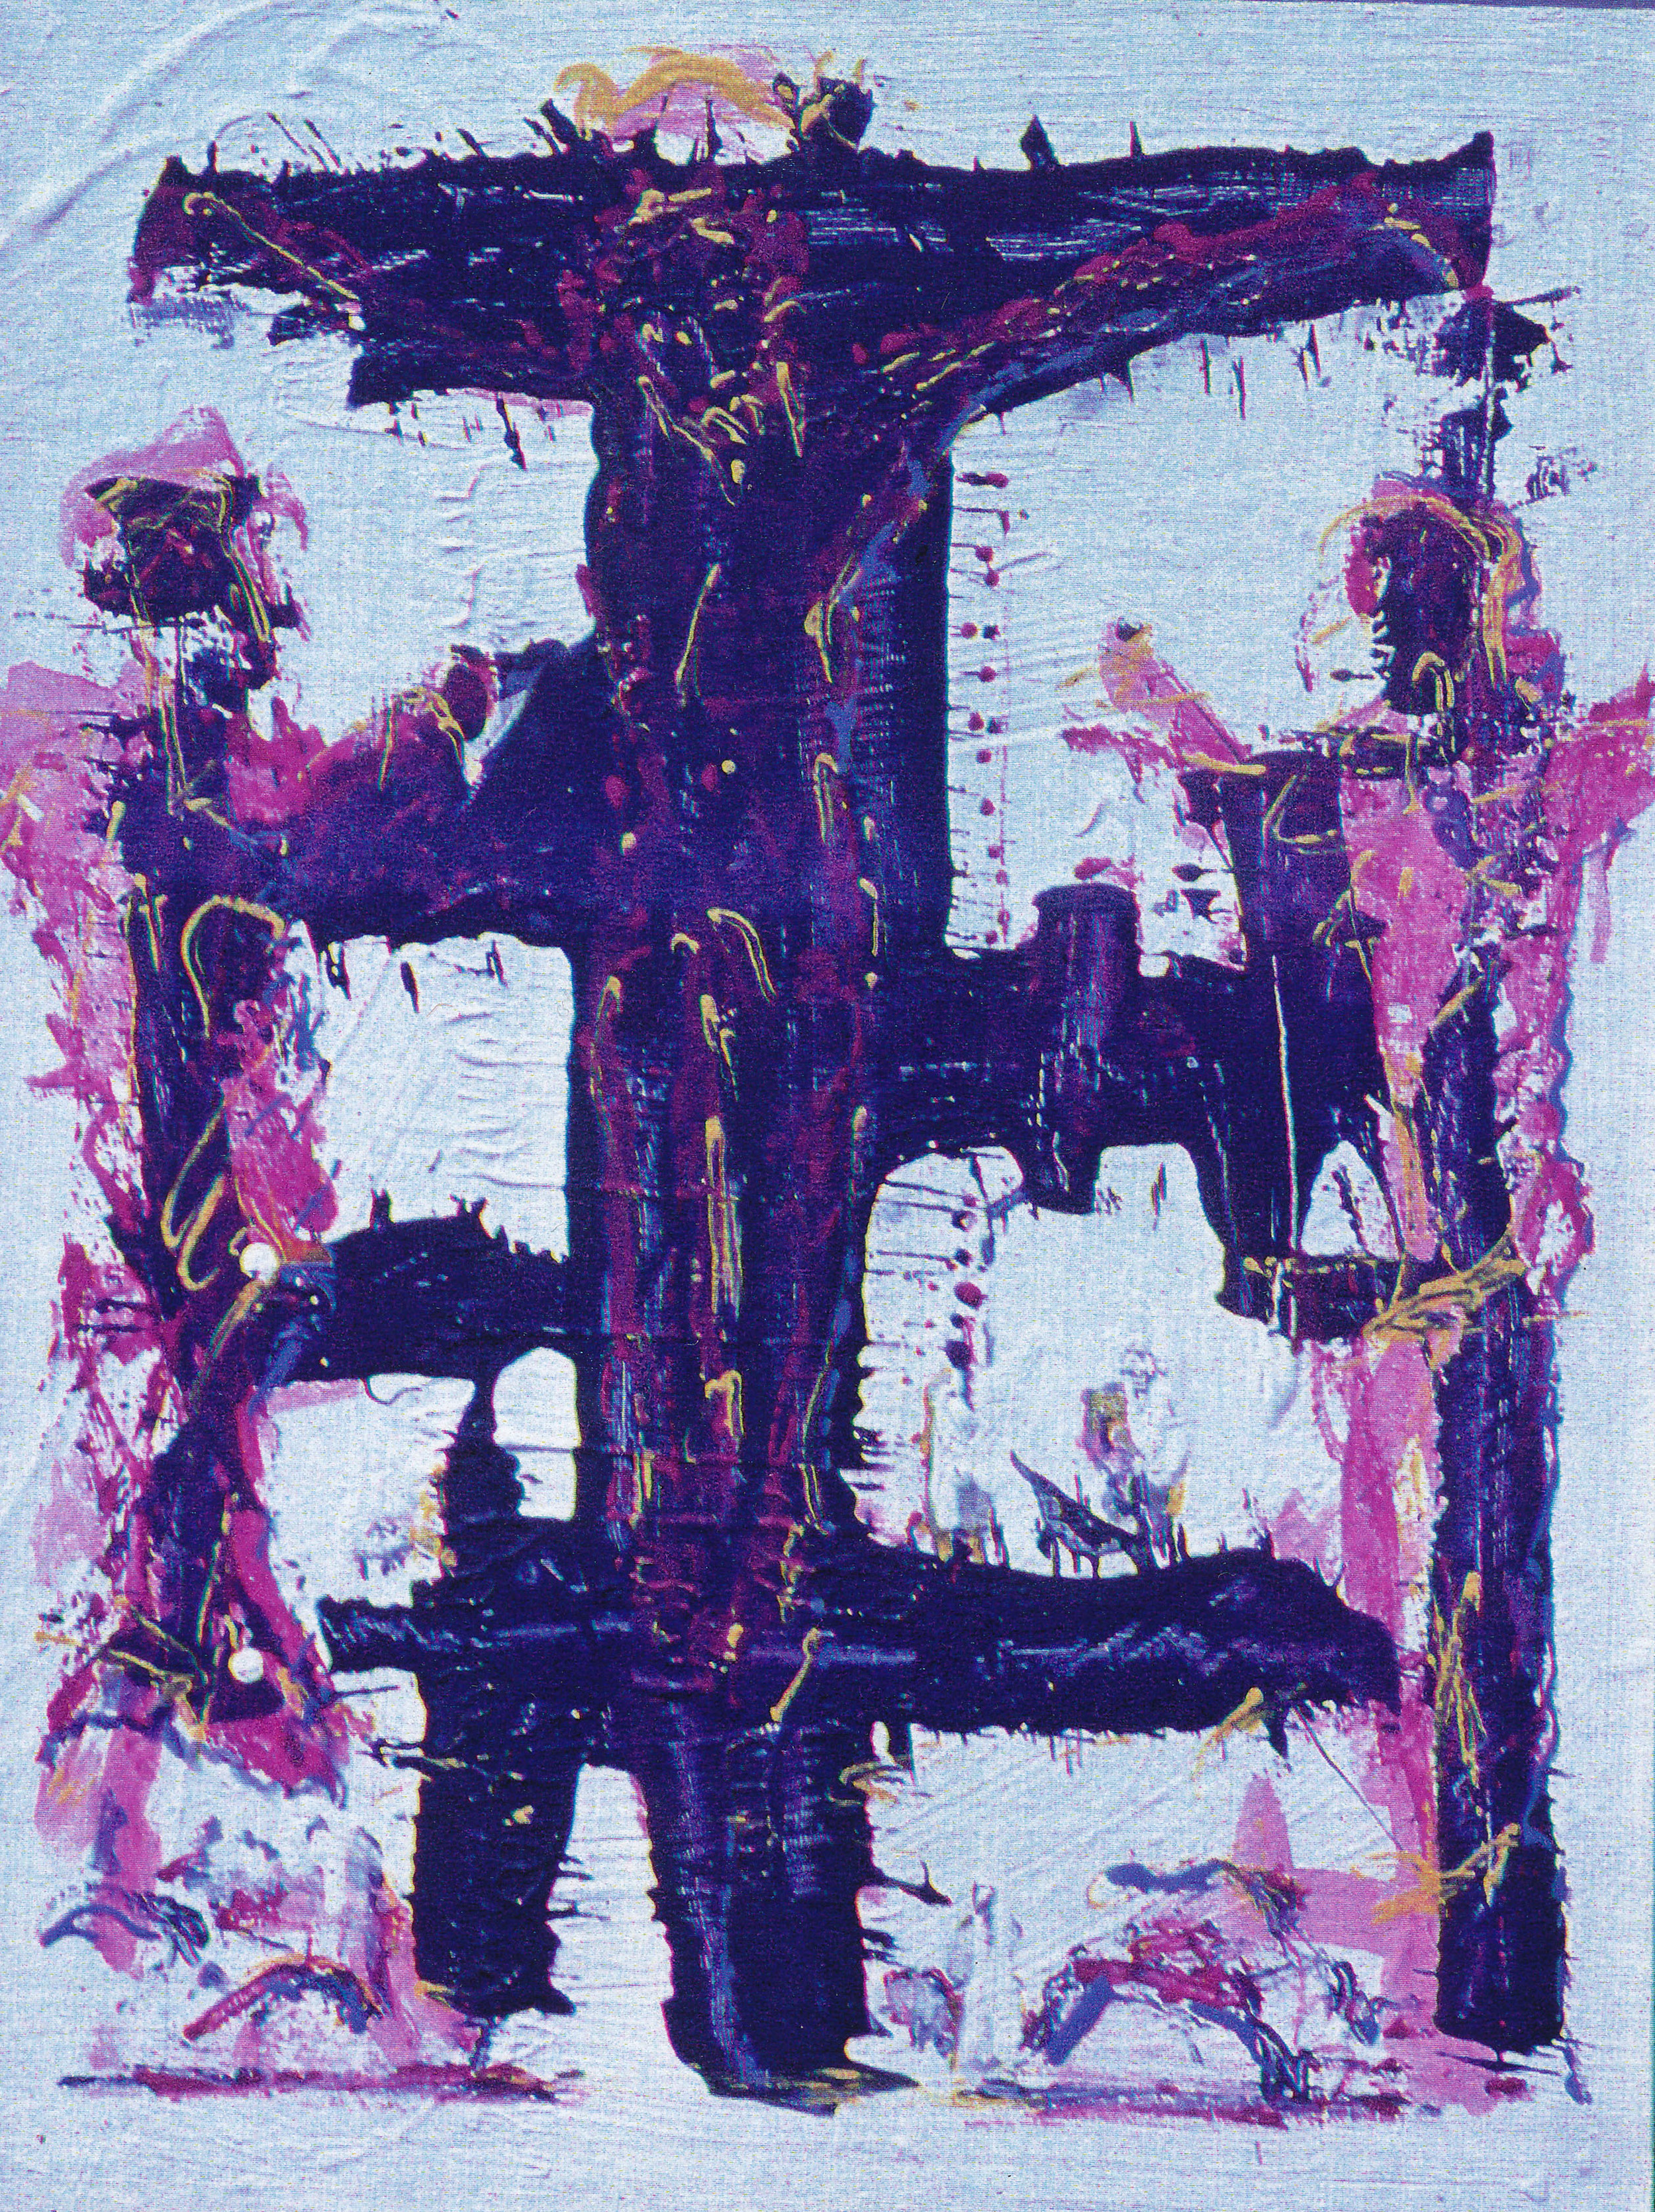 Crucifixion of a Painter II, 1994